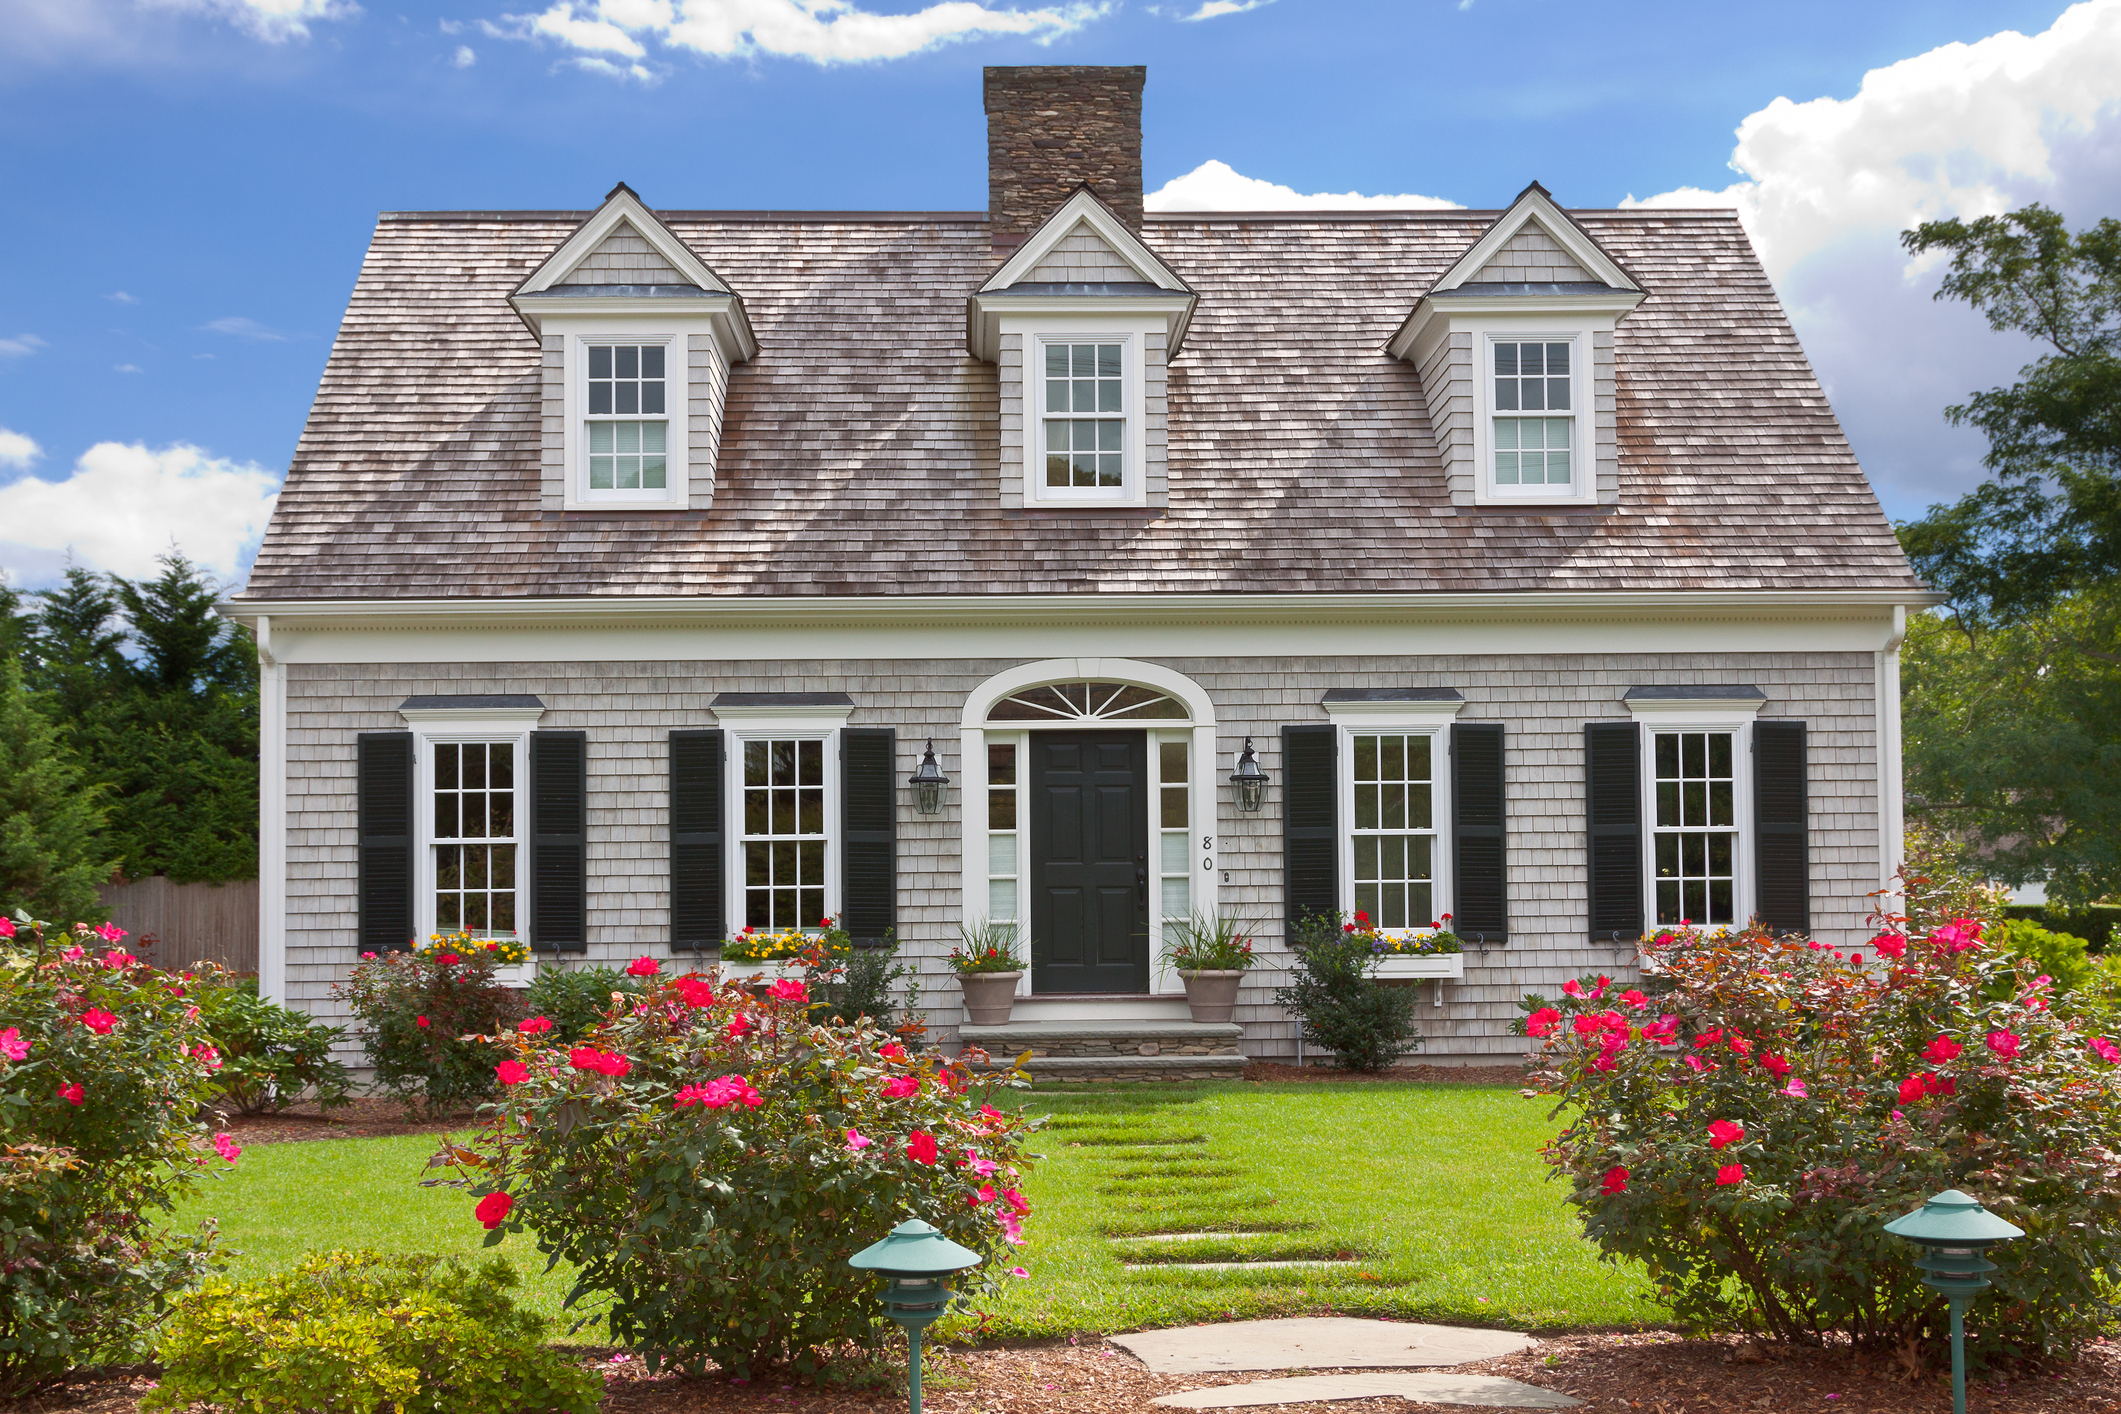 A close-up of the exterior of a cape cod home.